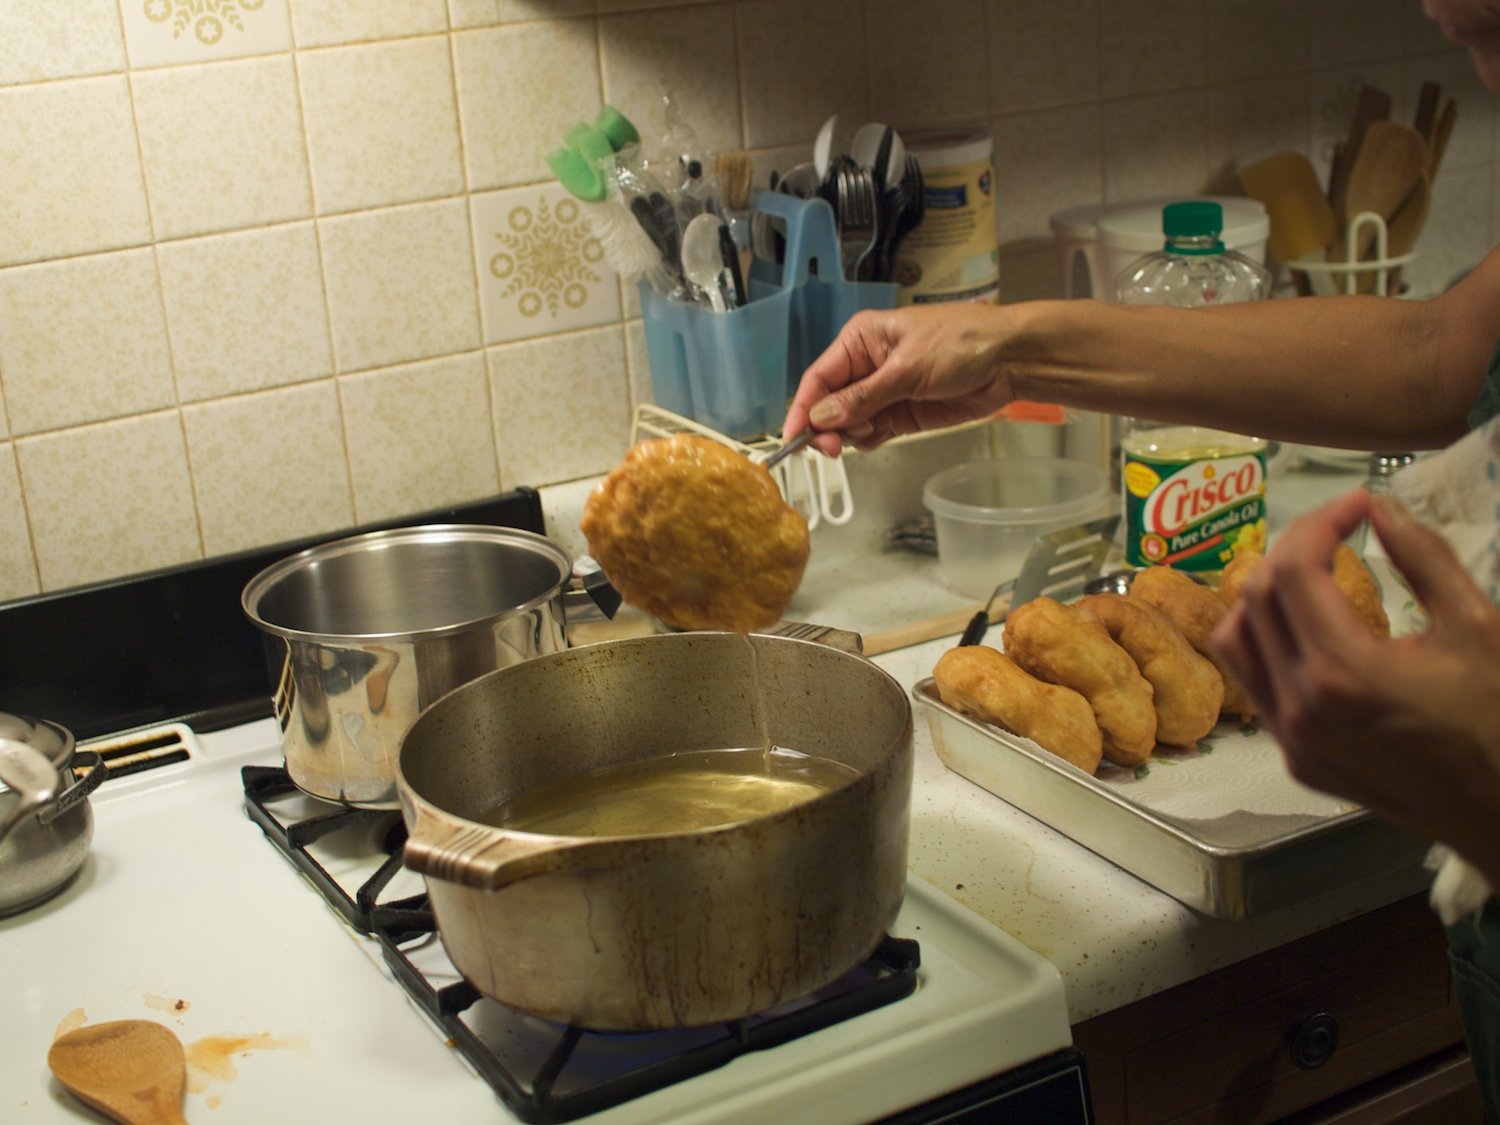 Federal court dismisses lawsuit over fry bread incident at Indian school